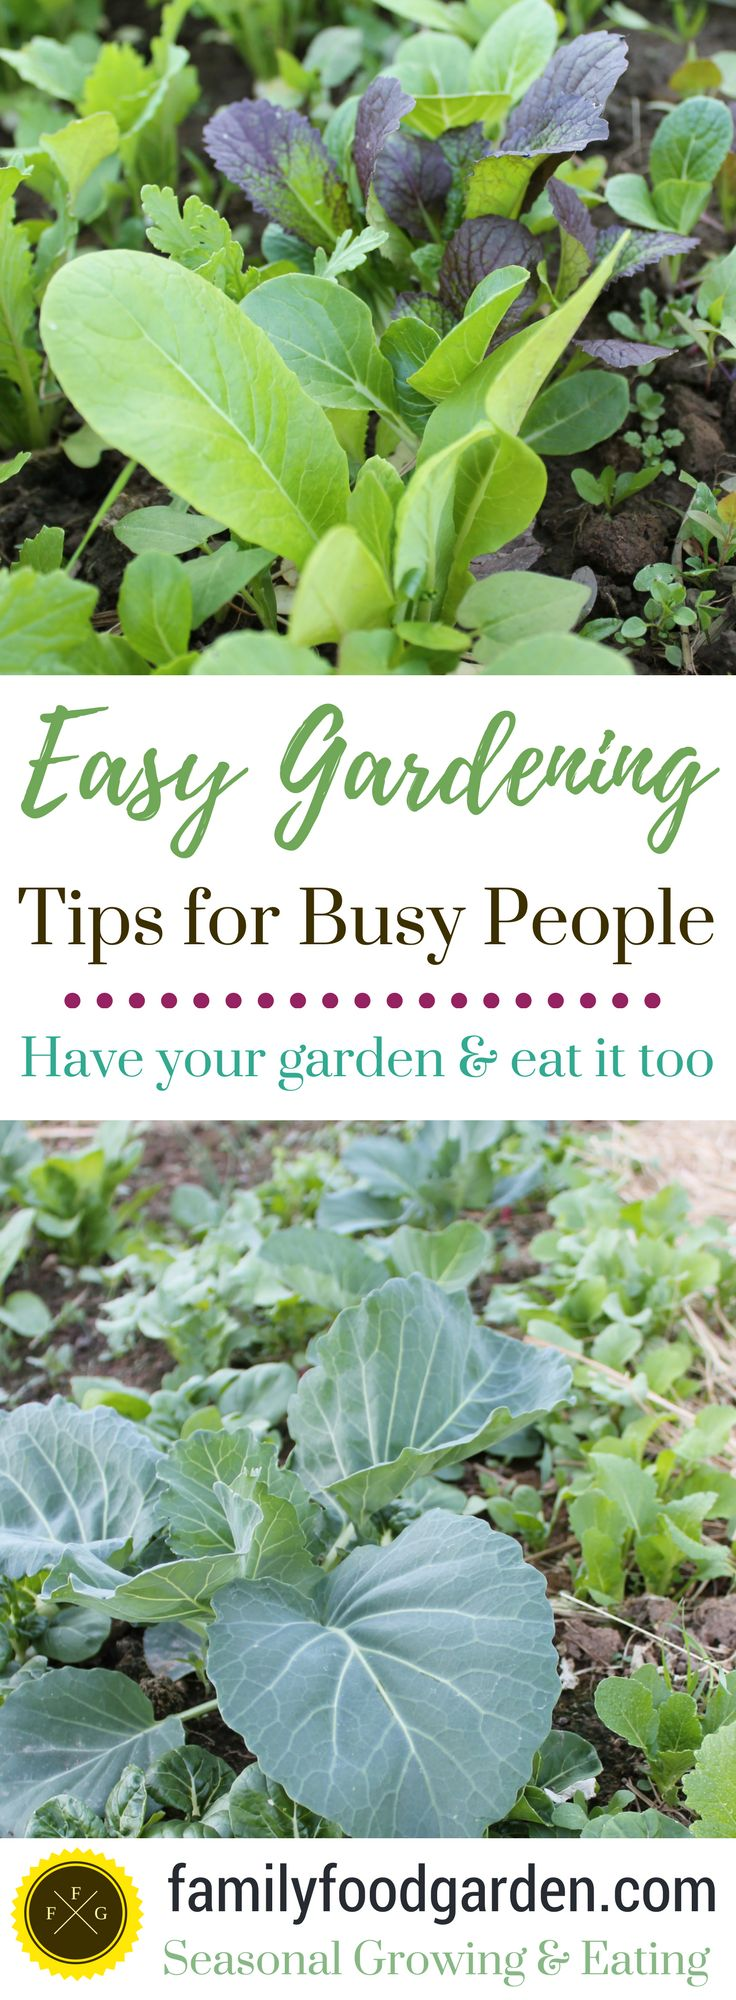 Easy Gardening Tips for Busy People - Family Food Garden